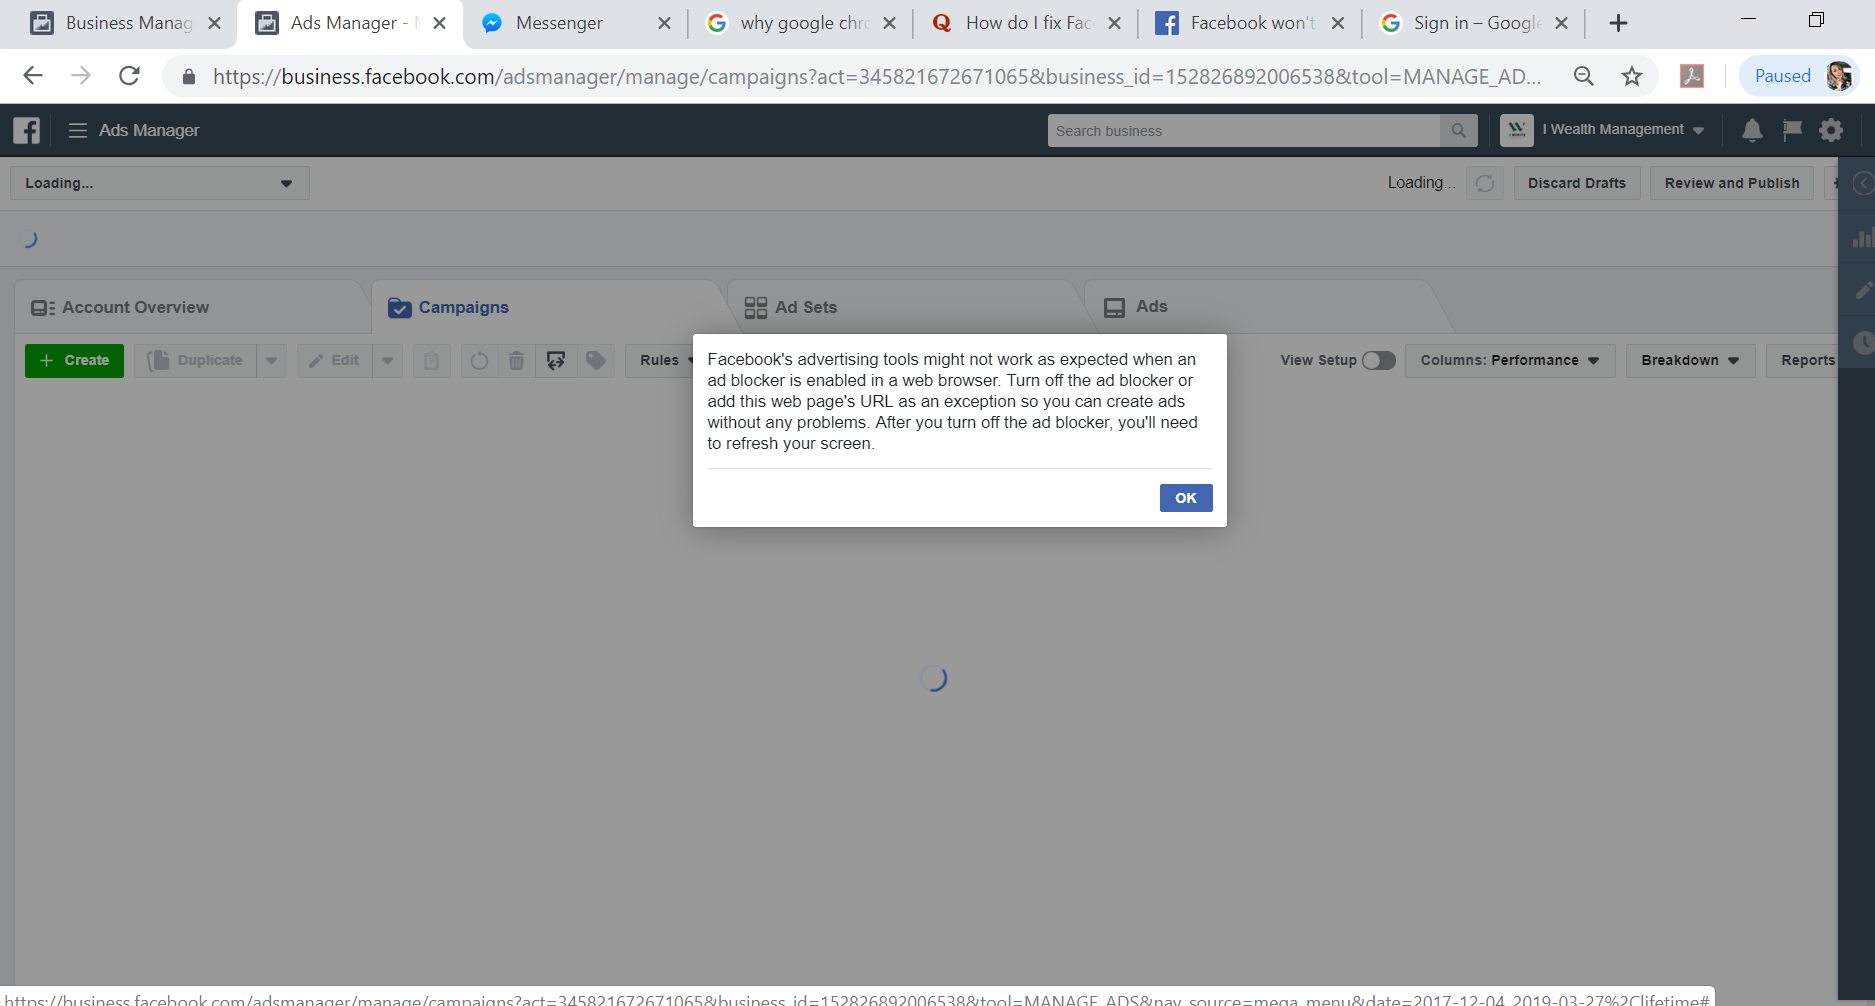 How To Enable The Facebook Business Manager Url On Google Chrome Google Chrome Community